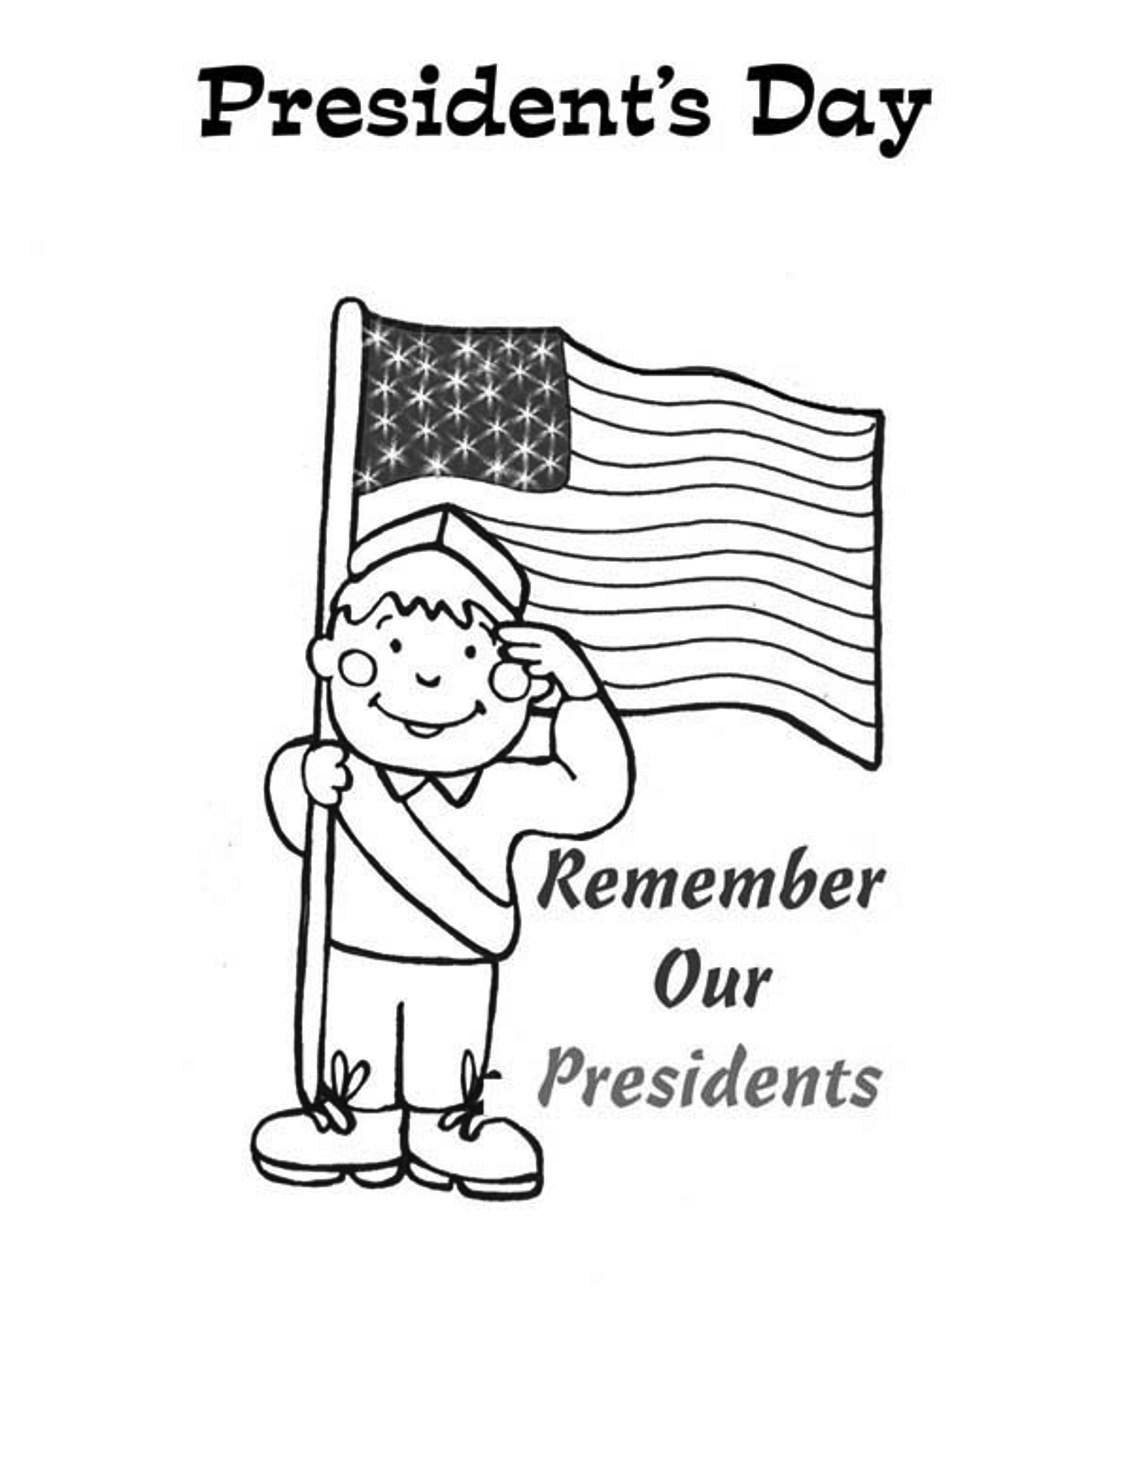 Remember Our Presidents Coloring Sheet